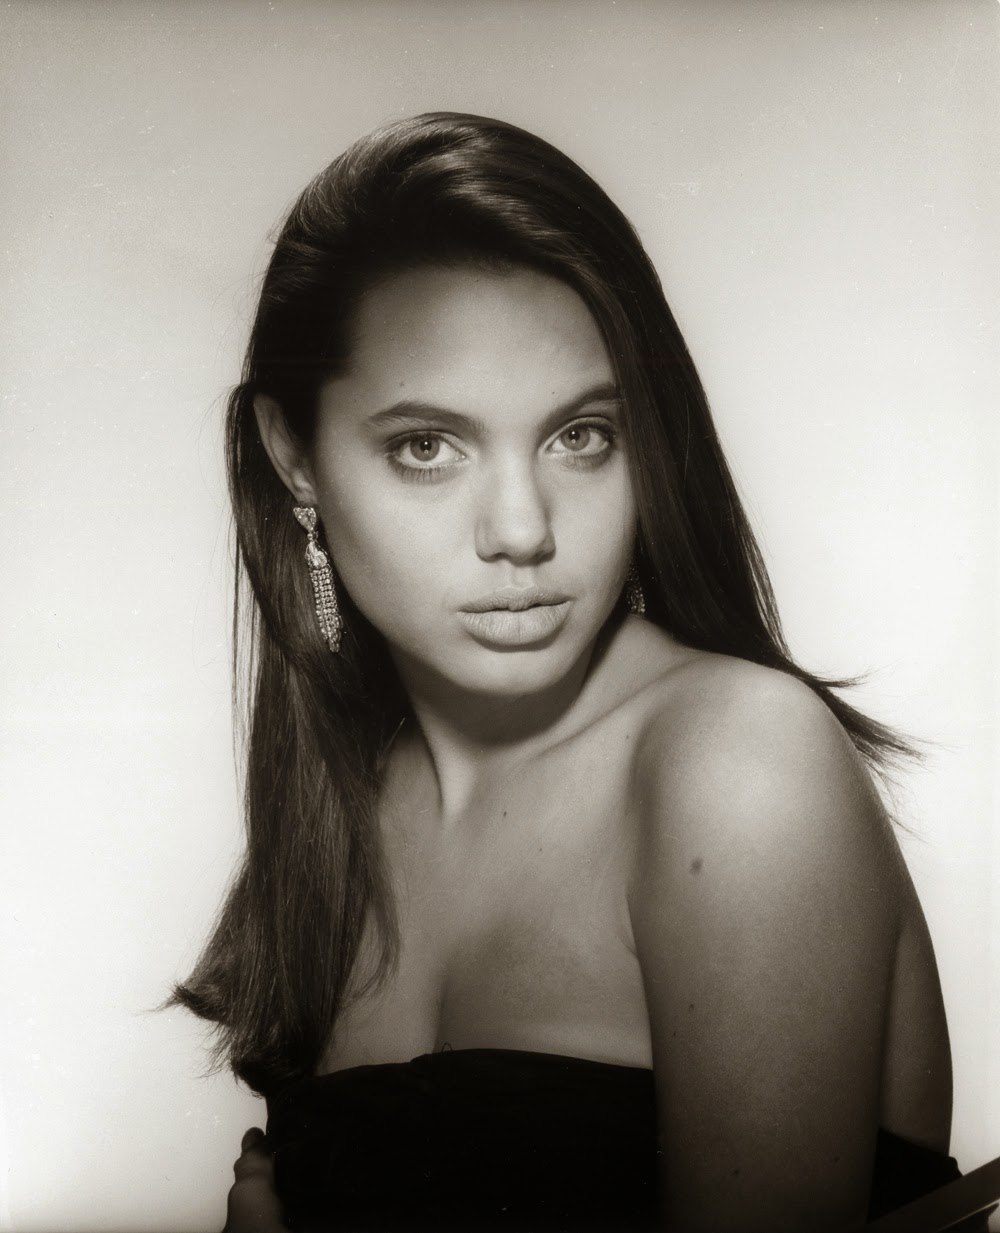 30 Stunning Black And White Pictures Of Angelina Jolie From Her First Photo Shoots When She Was